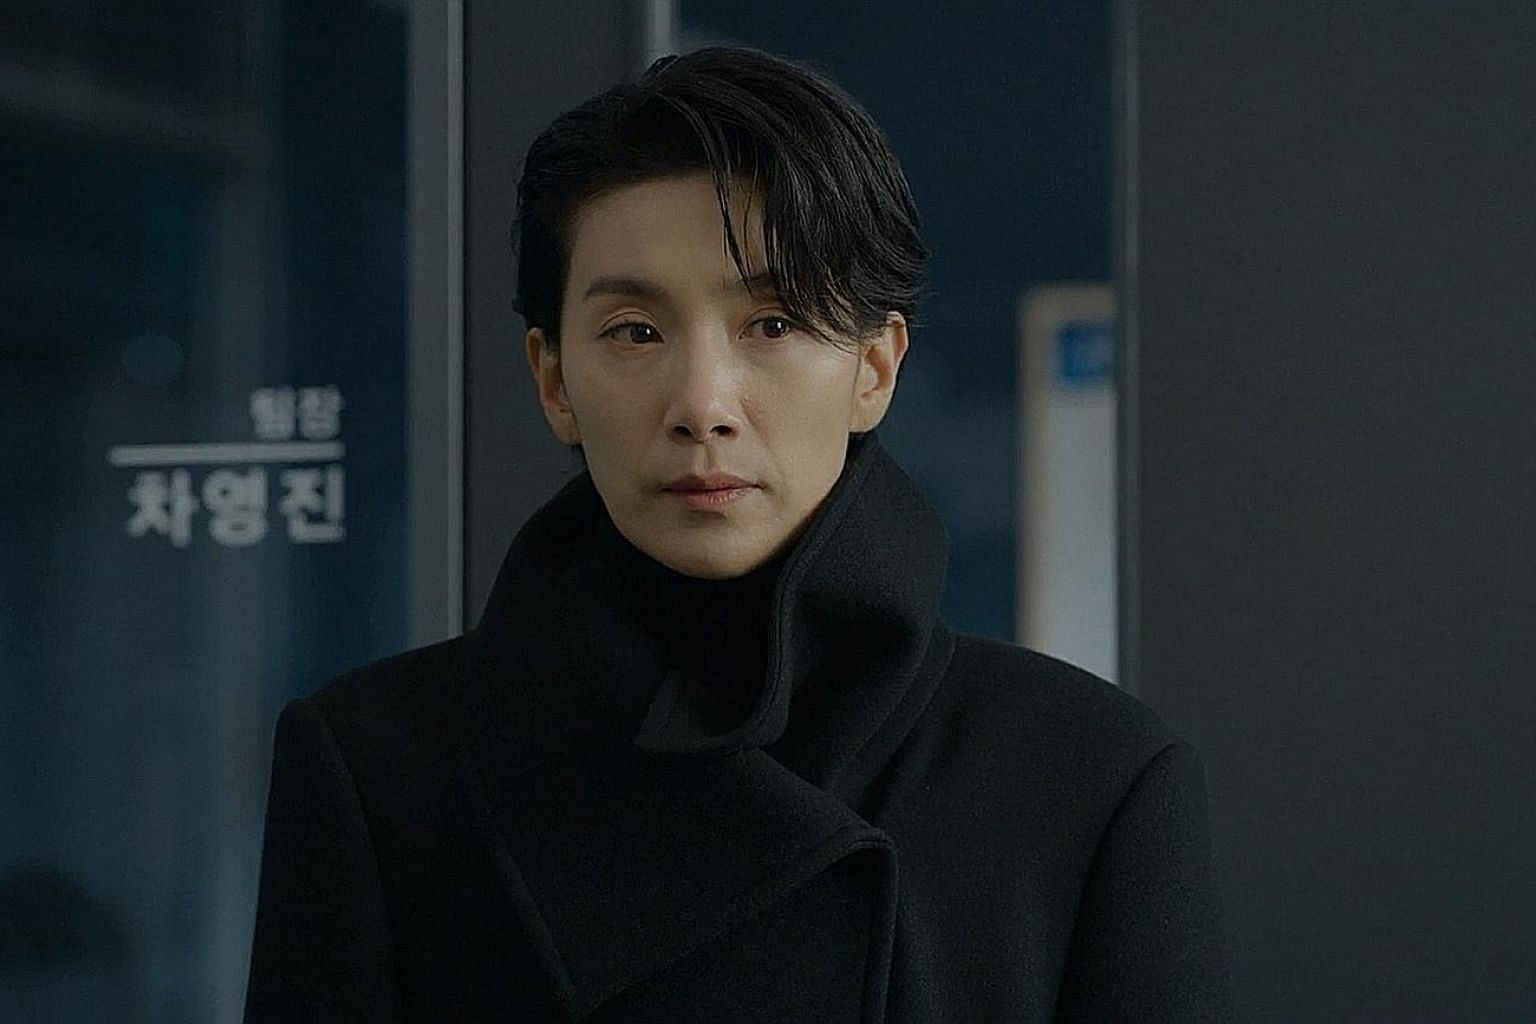 In Nobody Knows, Kim Seo-hyung (above) plays a detective out to solve a serial murder case, while in The World Of The Married, Kim Hee-ae (left) plays a doctor whose perfect life falls apart when she discovers that her husband is cheating on her.